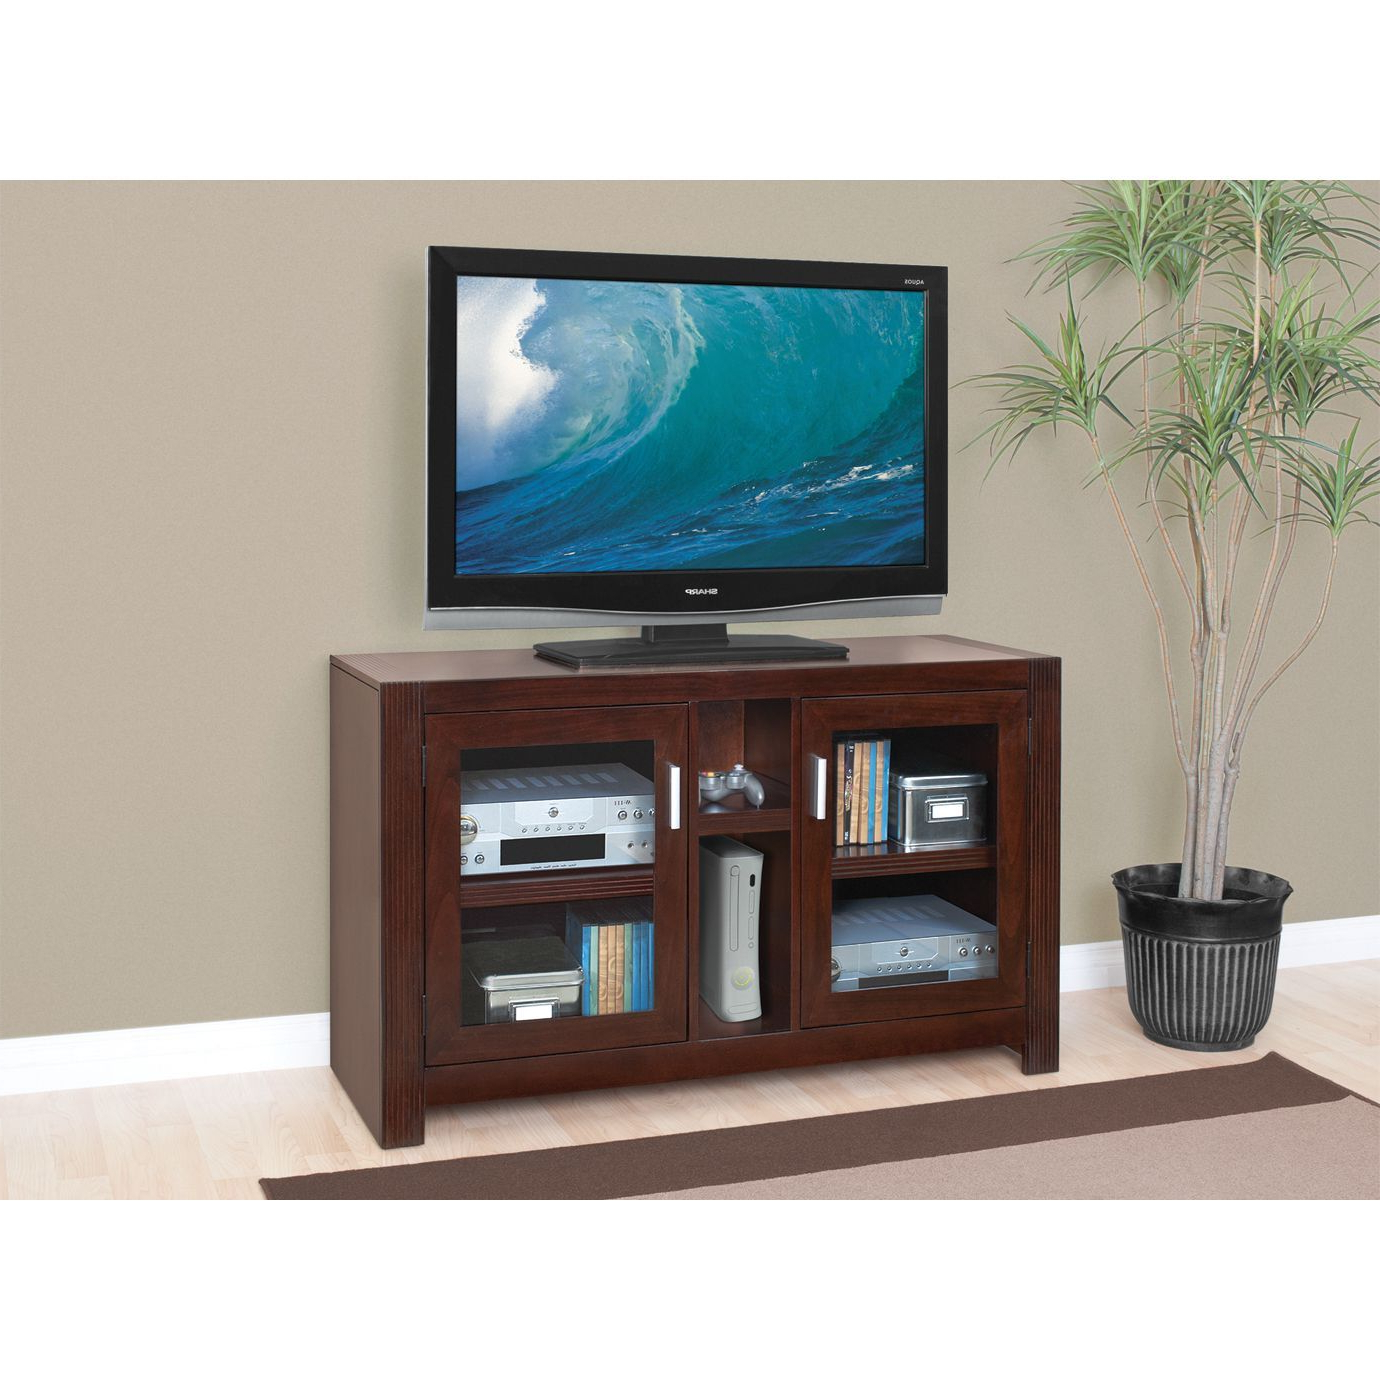 Preferred Glass Front Tv Stands Within Martin Camus 2 Shelf Mid Sized Tv Stand With Glass Front Doors (View 10 of 20)